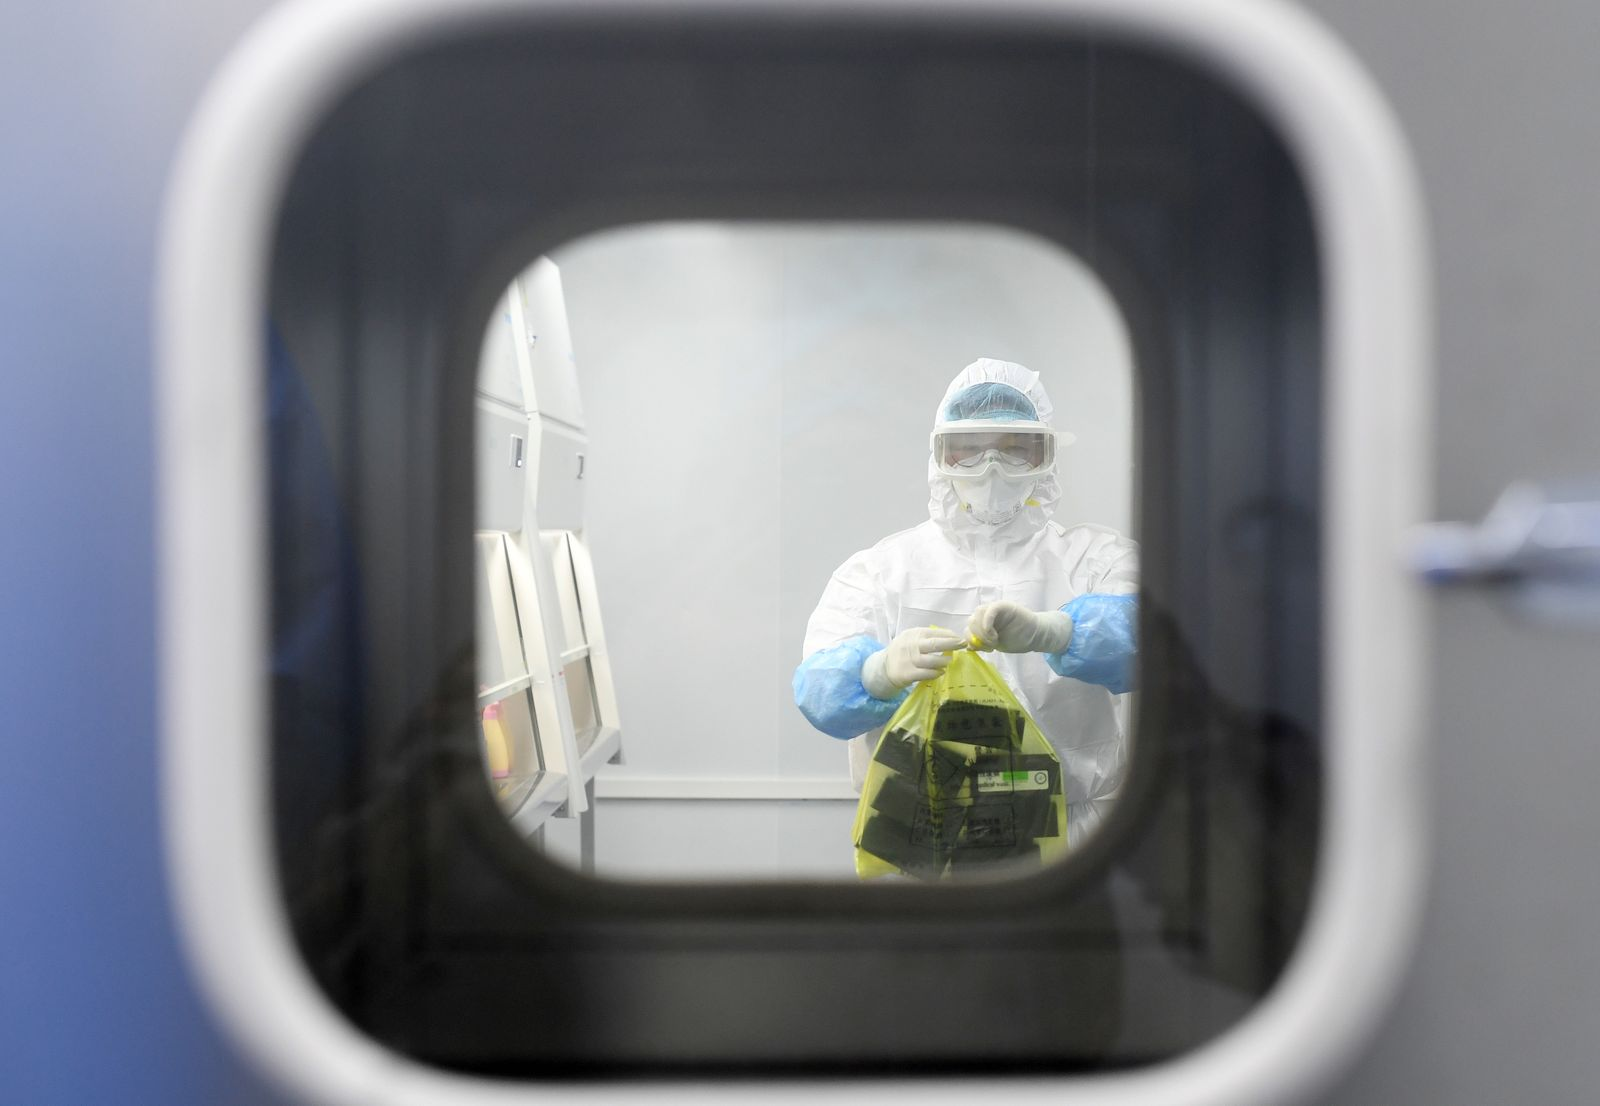 Worker in protective suit examines specimens inside a laboratory following an outbreak of the novel coronavirus in Wuhan